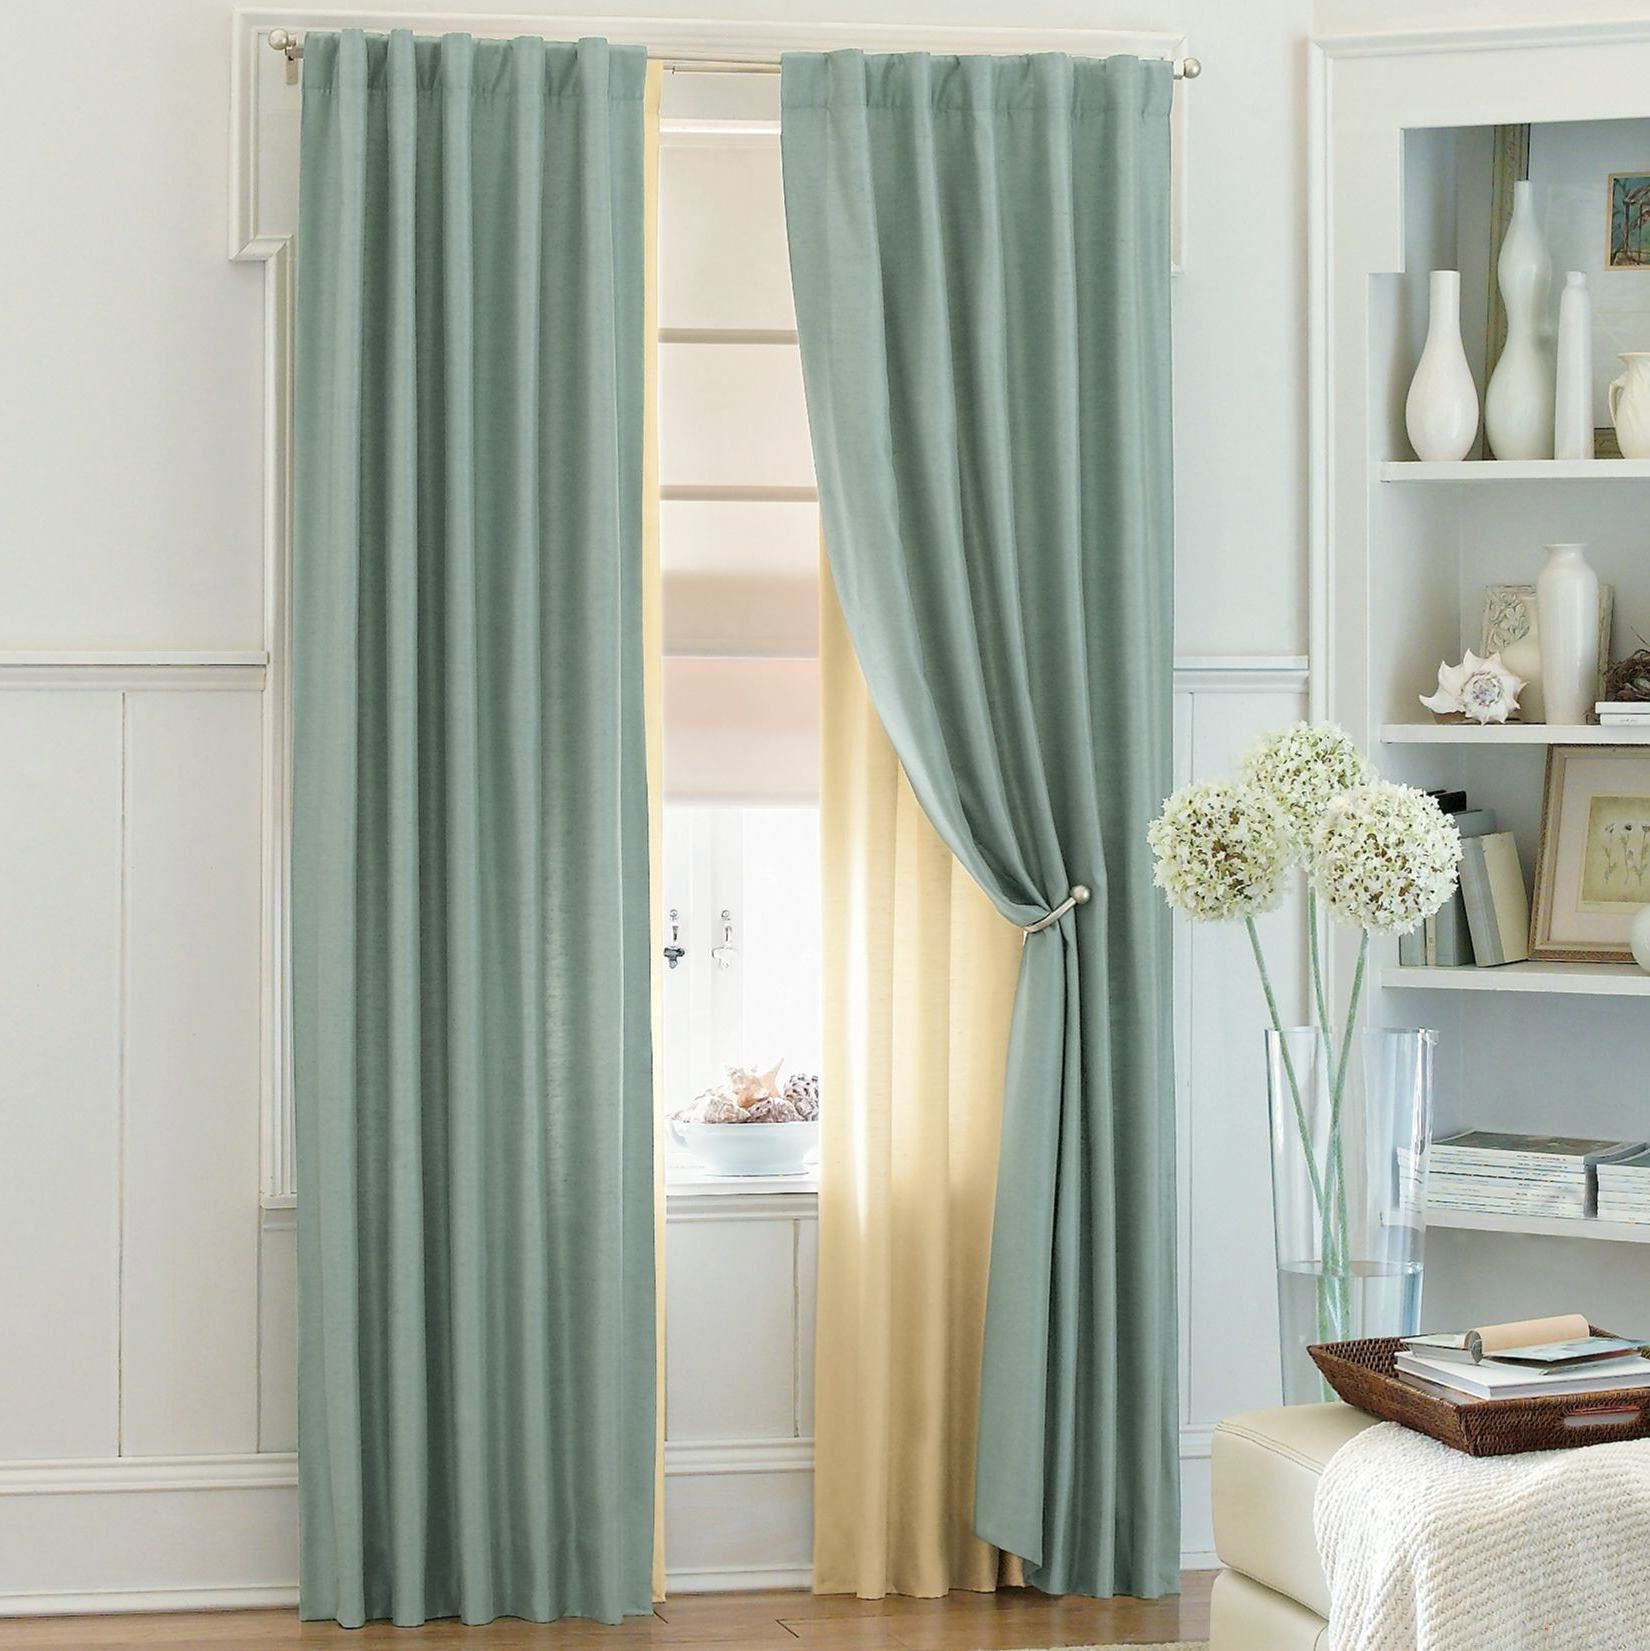 Living Room Curtain Designs New Ideas  Decoration Chief  Curtain Endearing Blue Curtain Designs Living Room Review